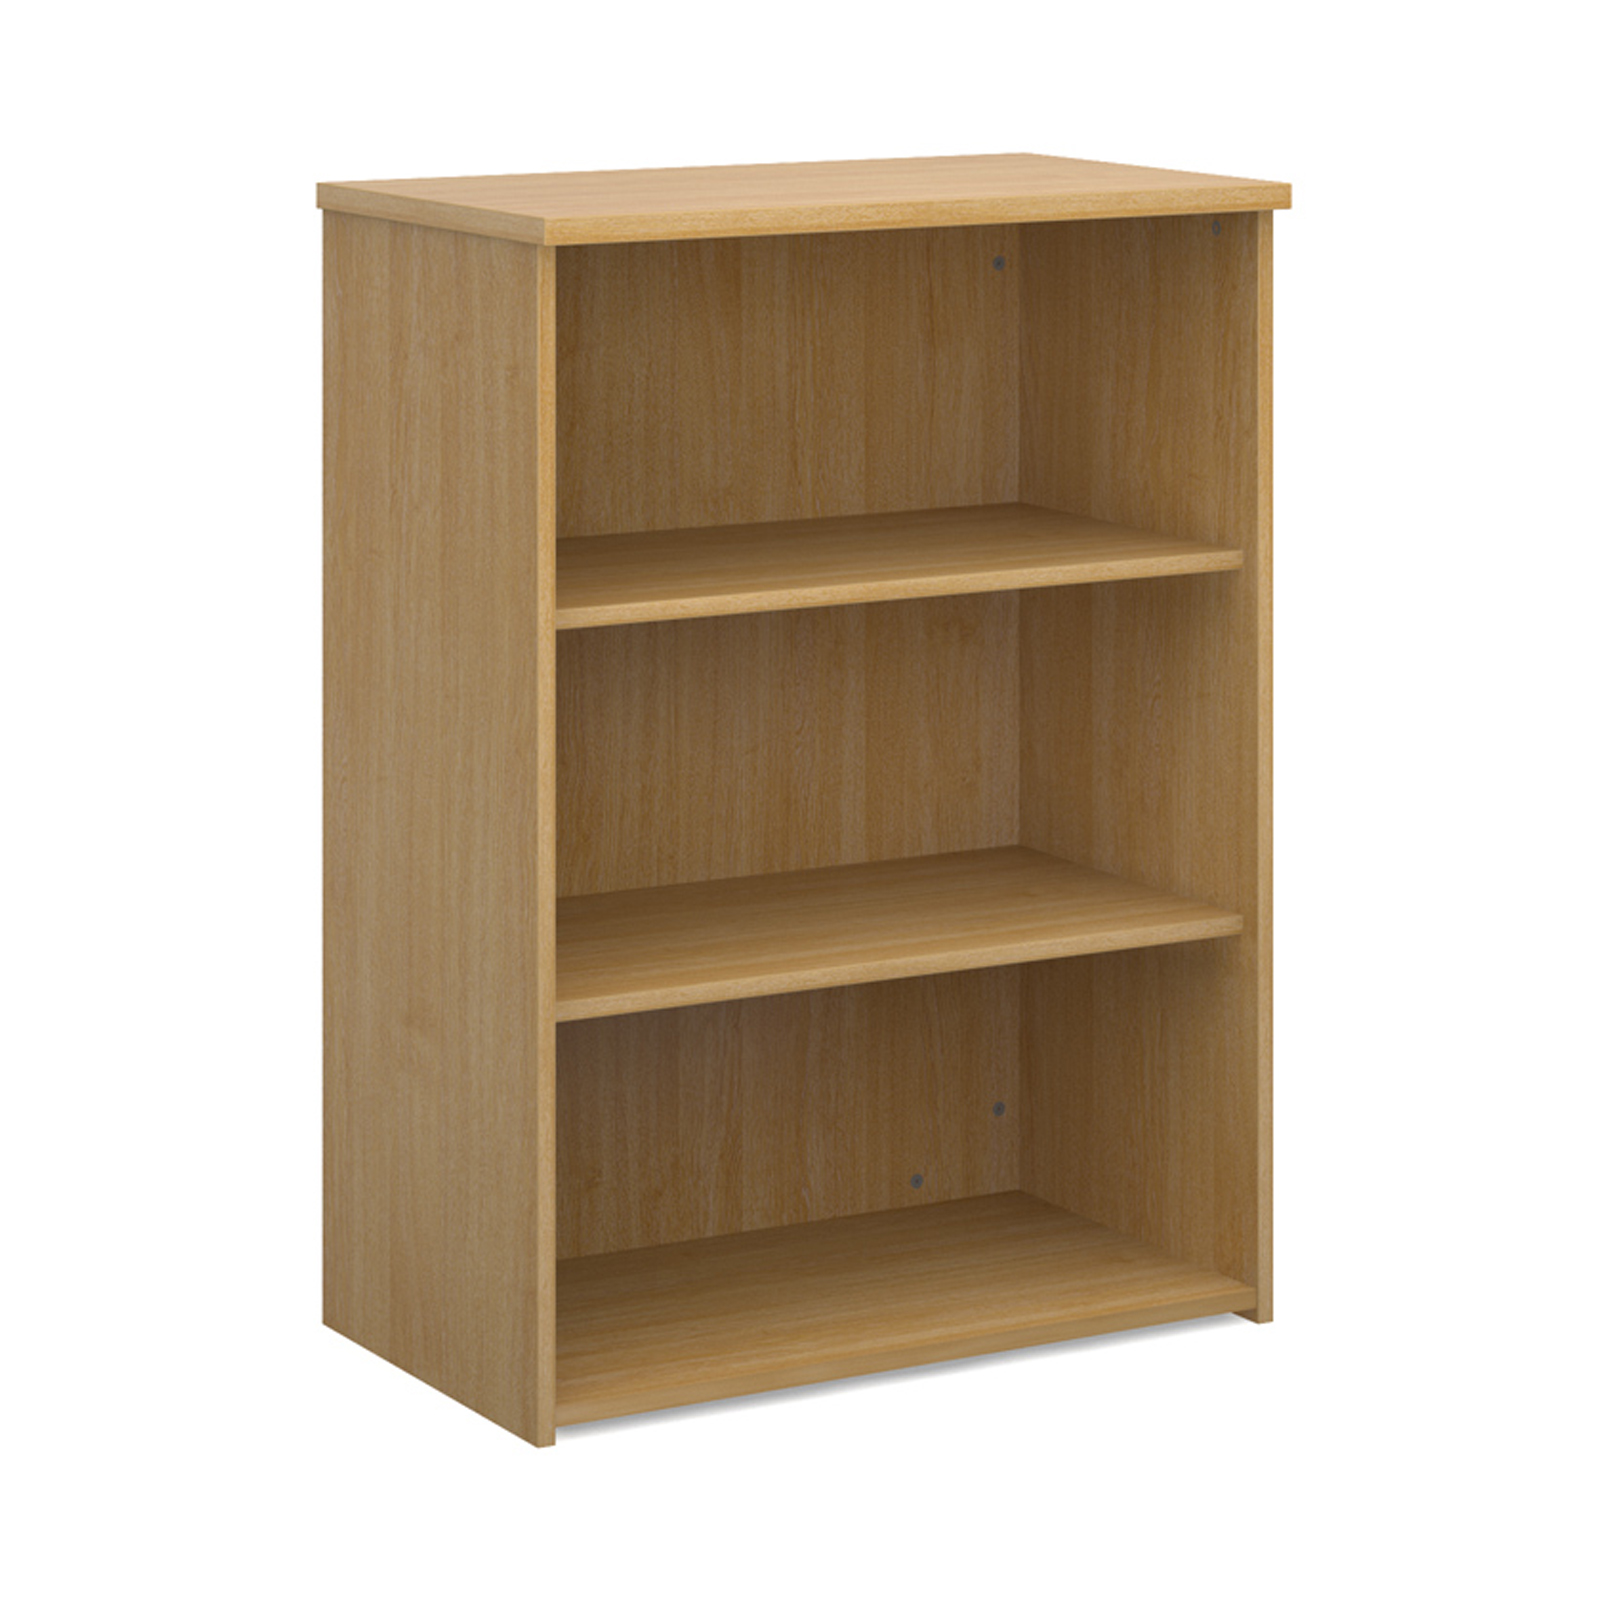 Up To 1200mm High Universal bookcase 1090mm high with 2 shelves - oak